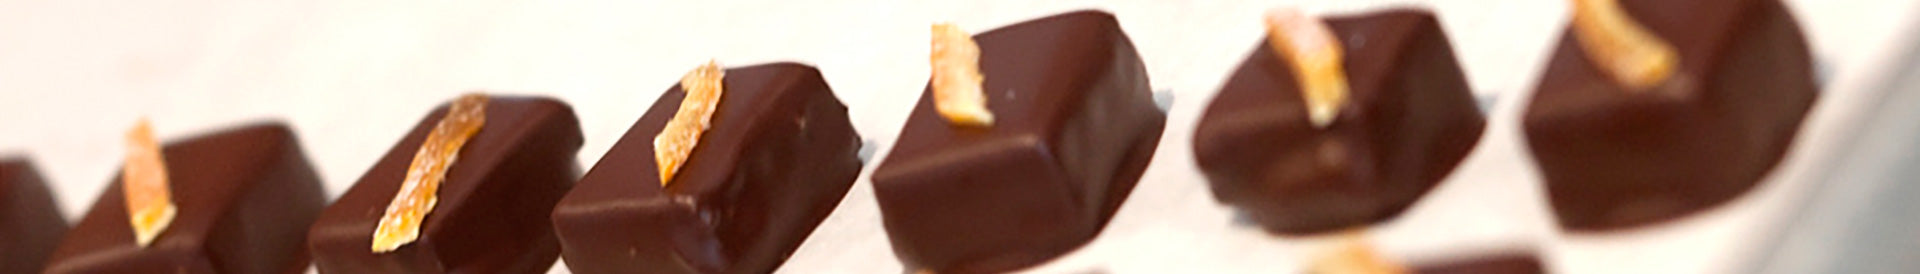 Artisan Chocolate orange peels